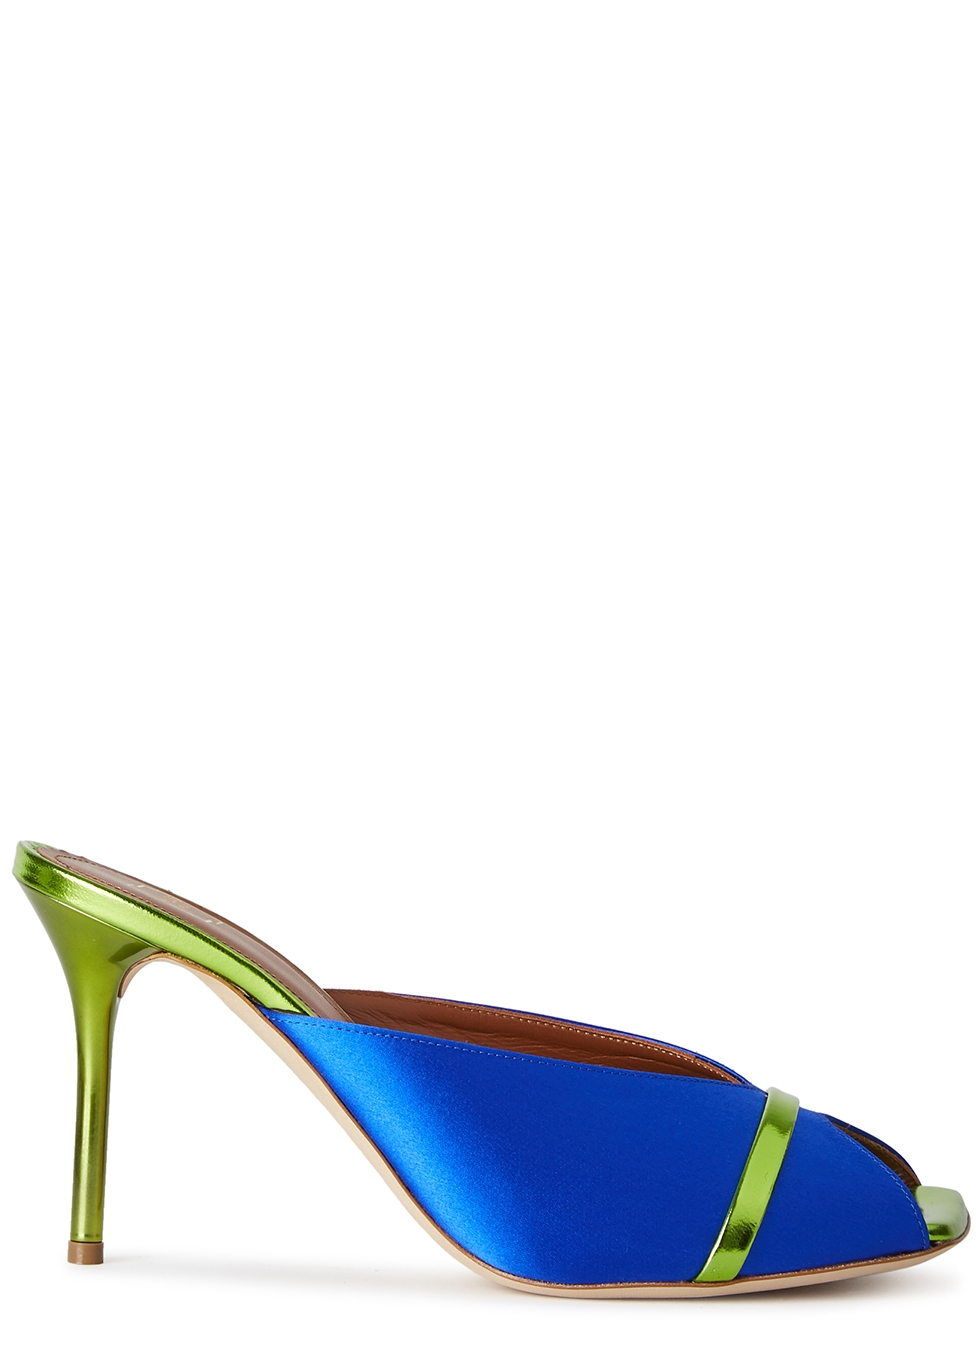 Lucia 85 blue satin and leather mules